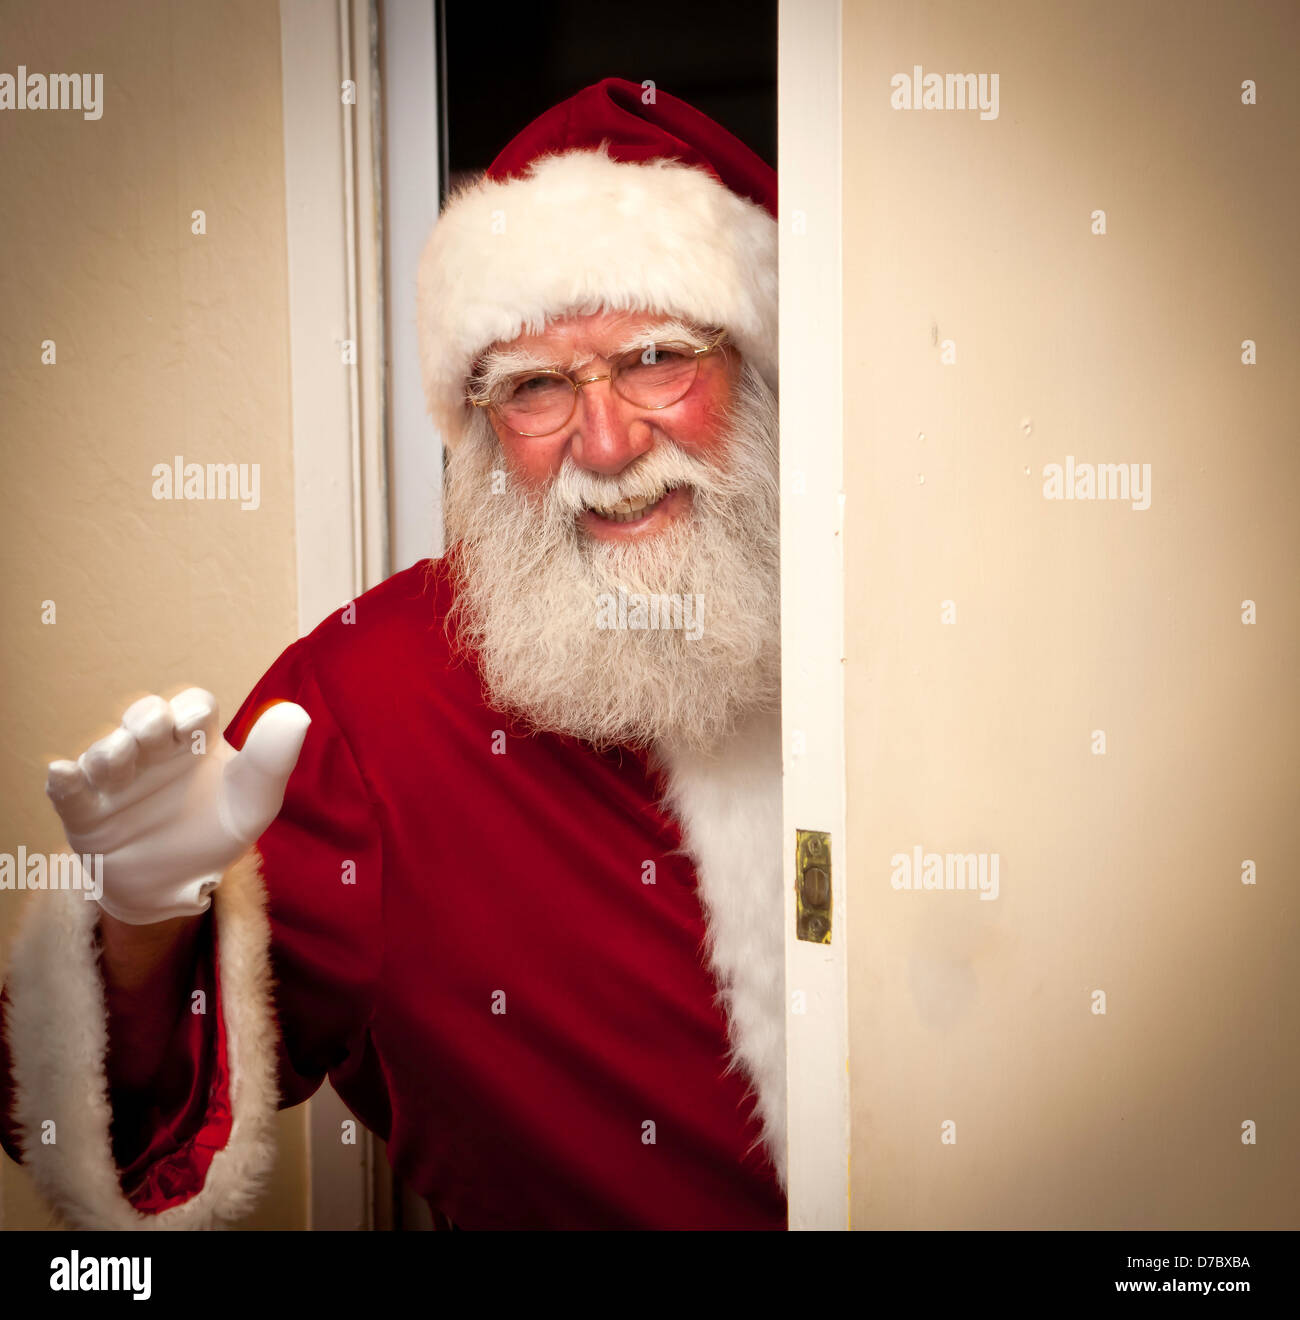 Santa claus waving goodbye or hello stock photo royalty